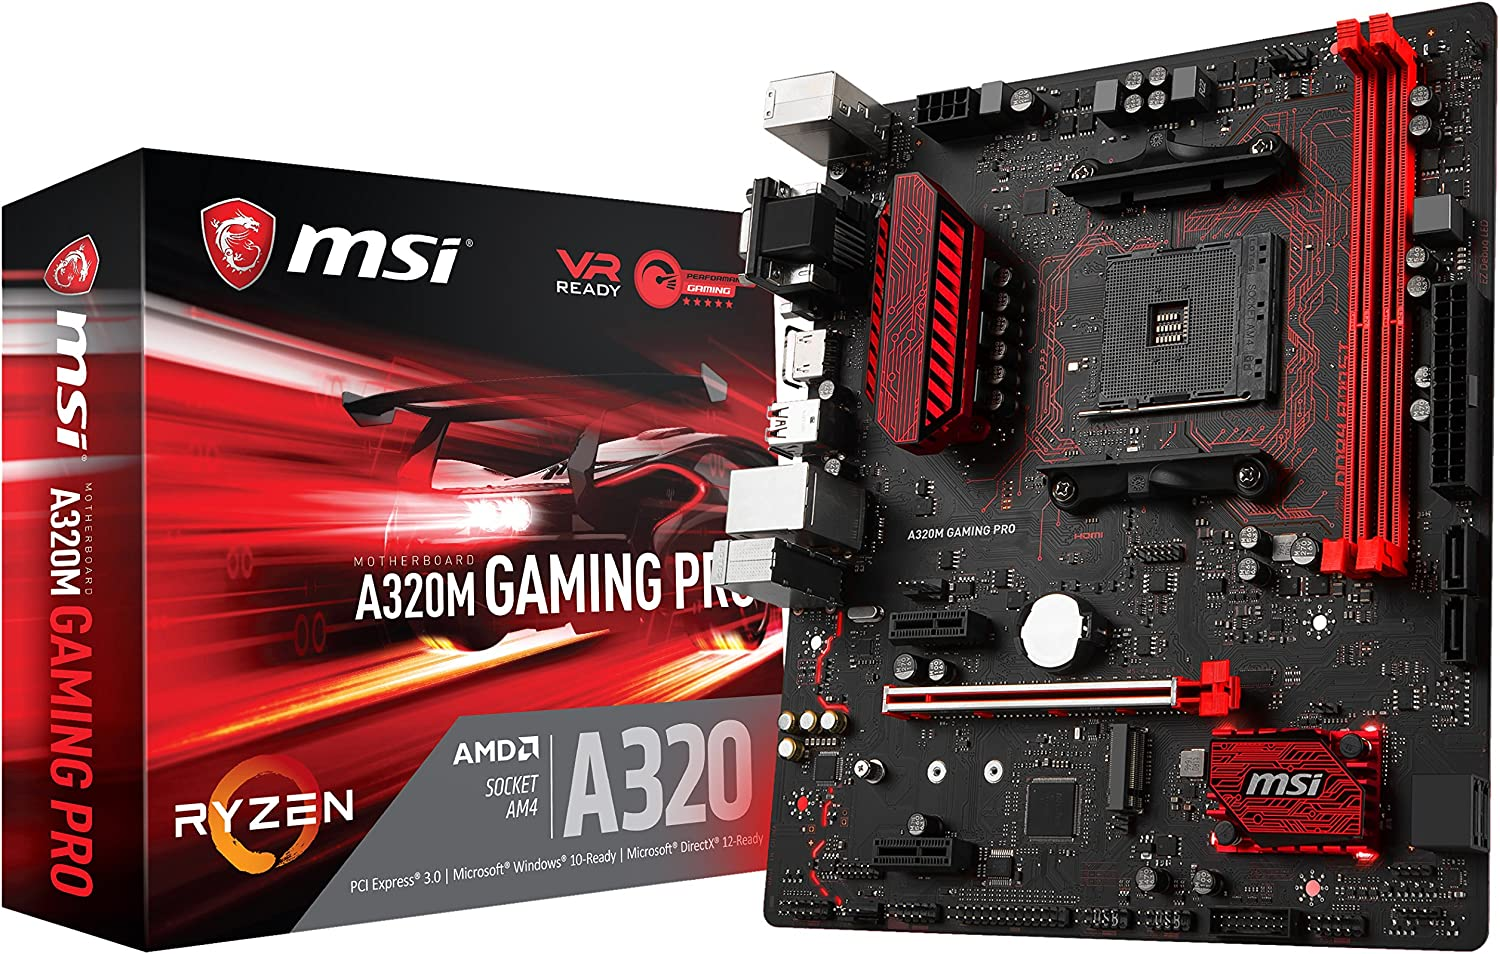 MSI Gaming AMD Ryzen A320 DDR4 VR Ready HDMI USB 3 micro-ATX Motherboard (A320M GAMING PRO)